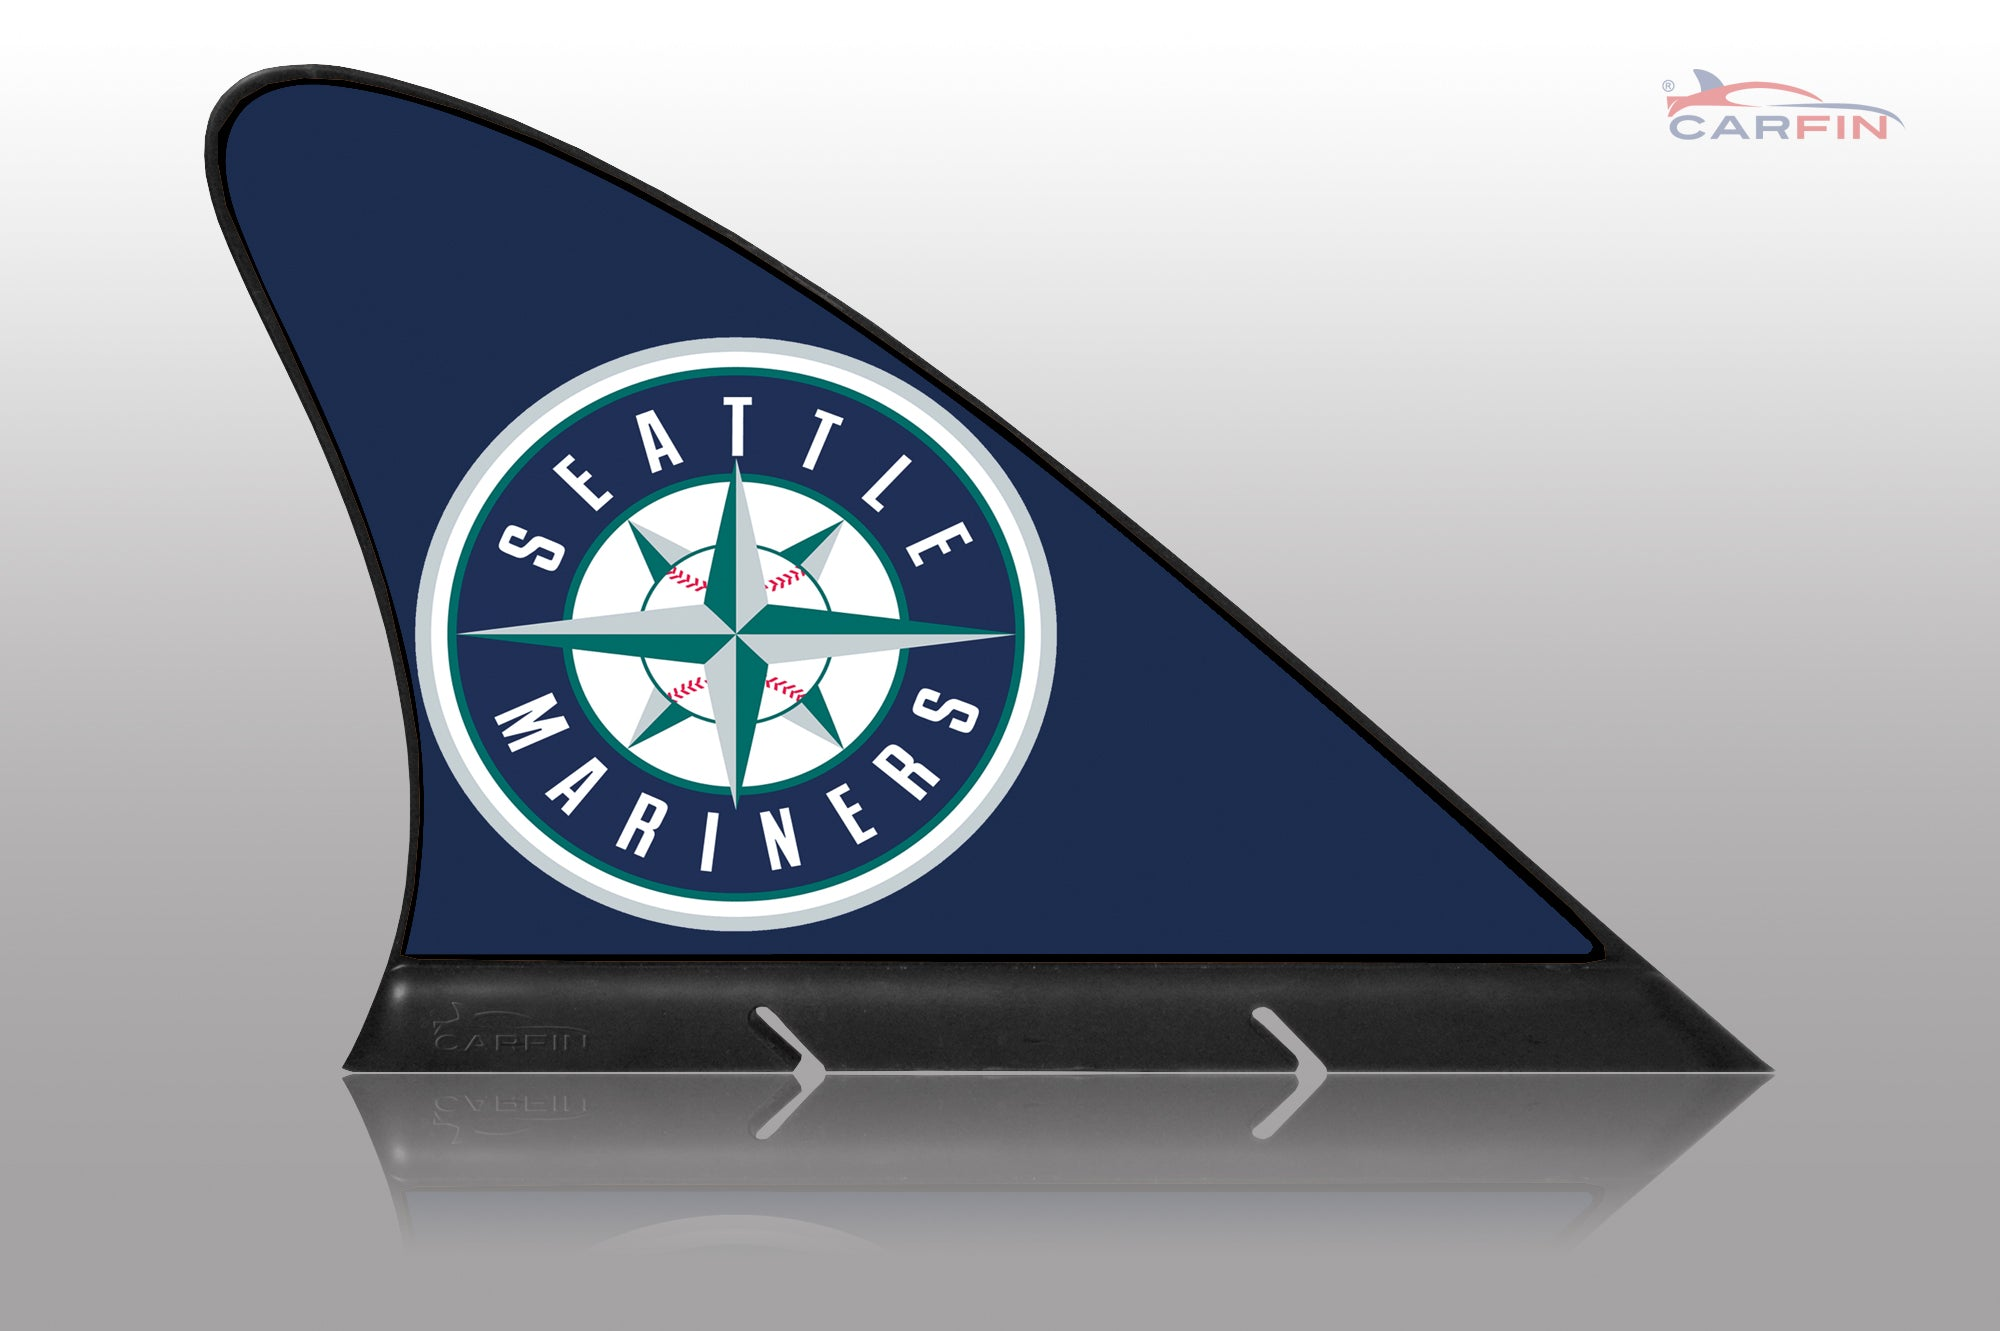 Seattle Mariners Car Flag, CARFIN  Magnetic Car Flag. - Carfin